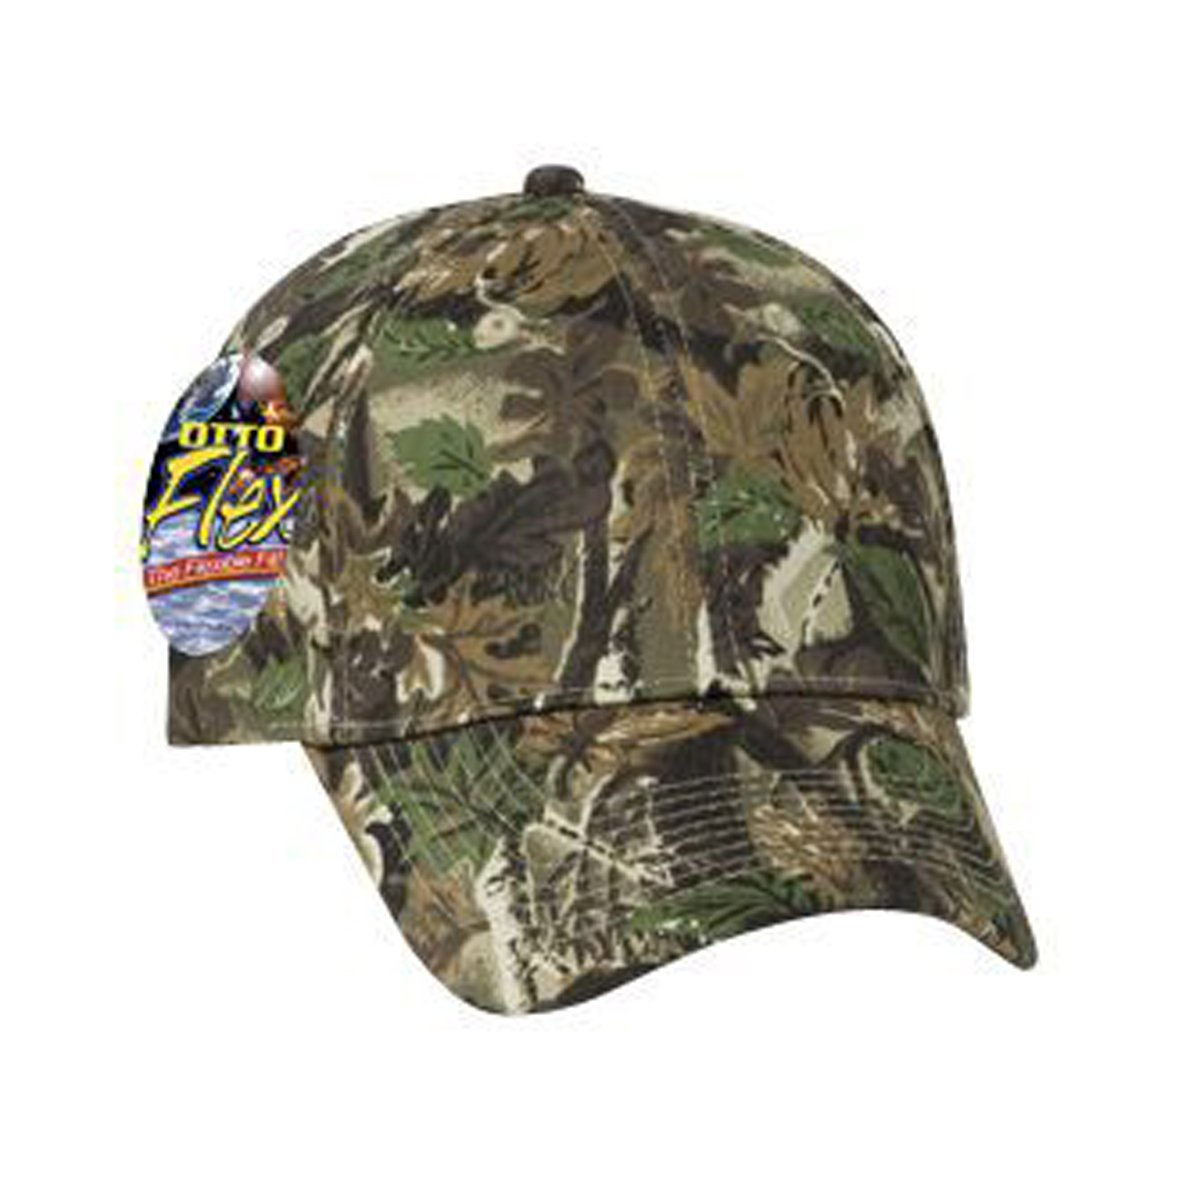 7f753ea6b2d Otto Otto Flex Stretchable Camouflage Cotton Twill Low Profile Style Caps  (S M) (L XL) at Amazon Men s Clothing store